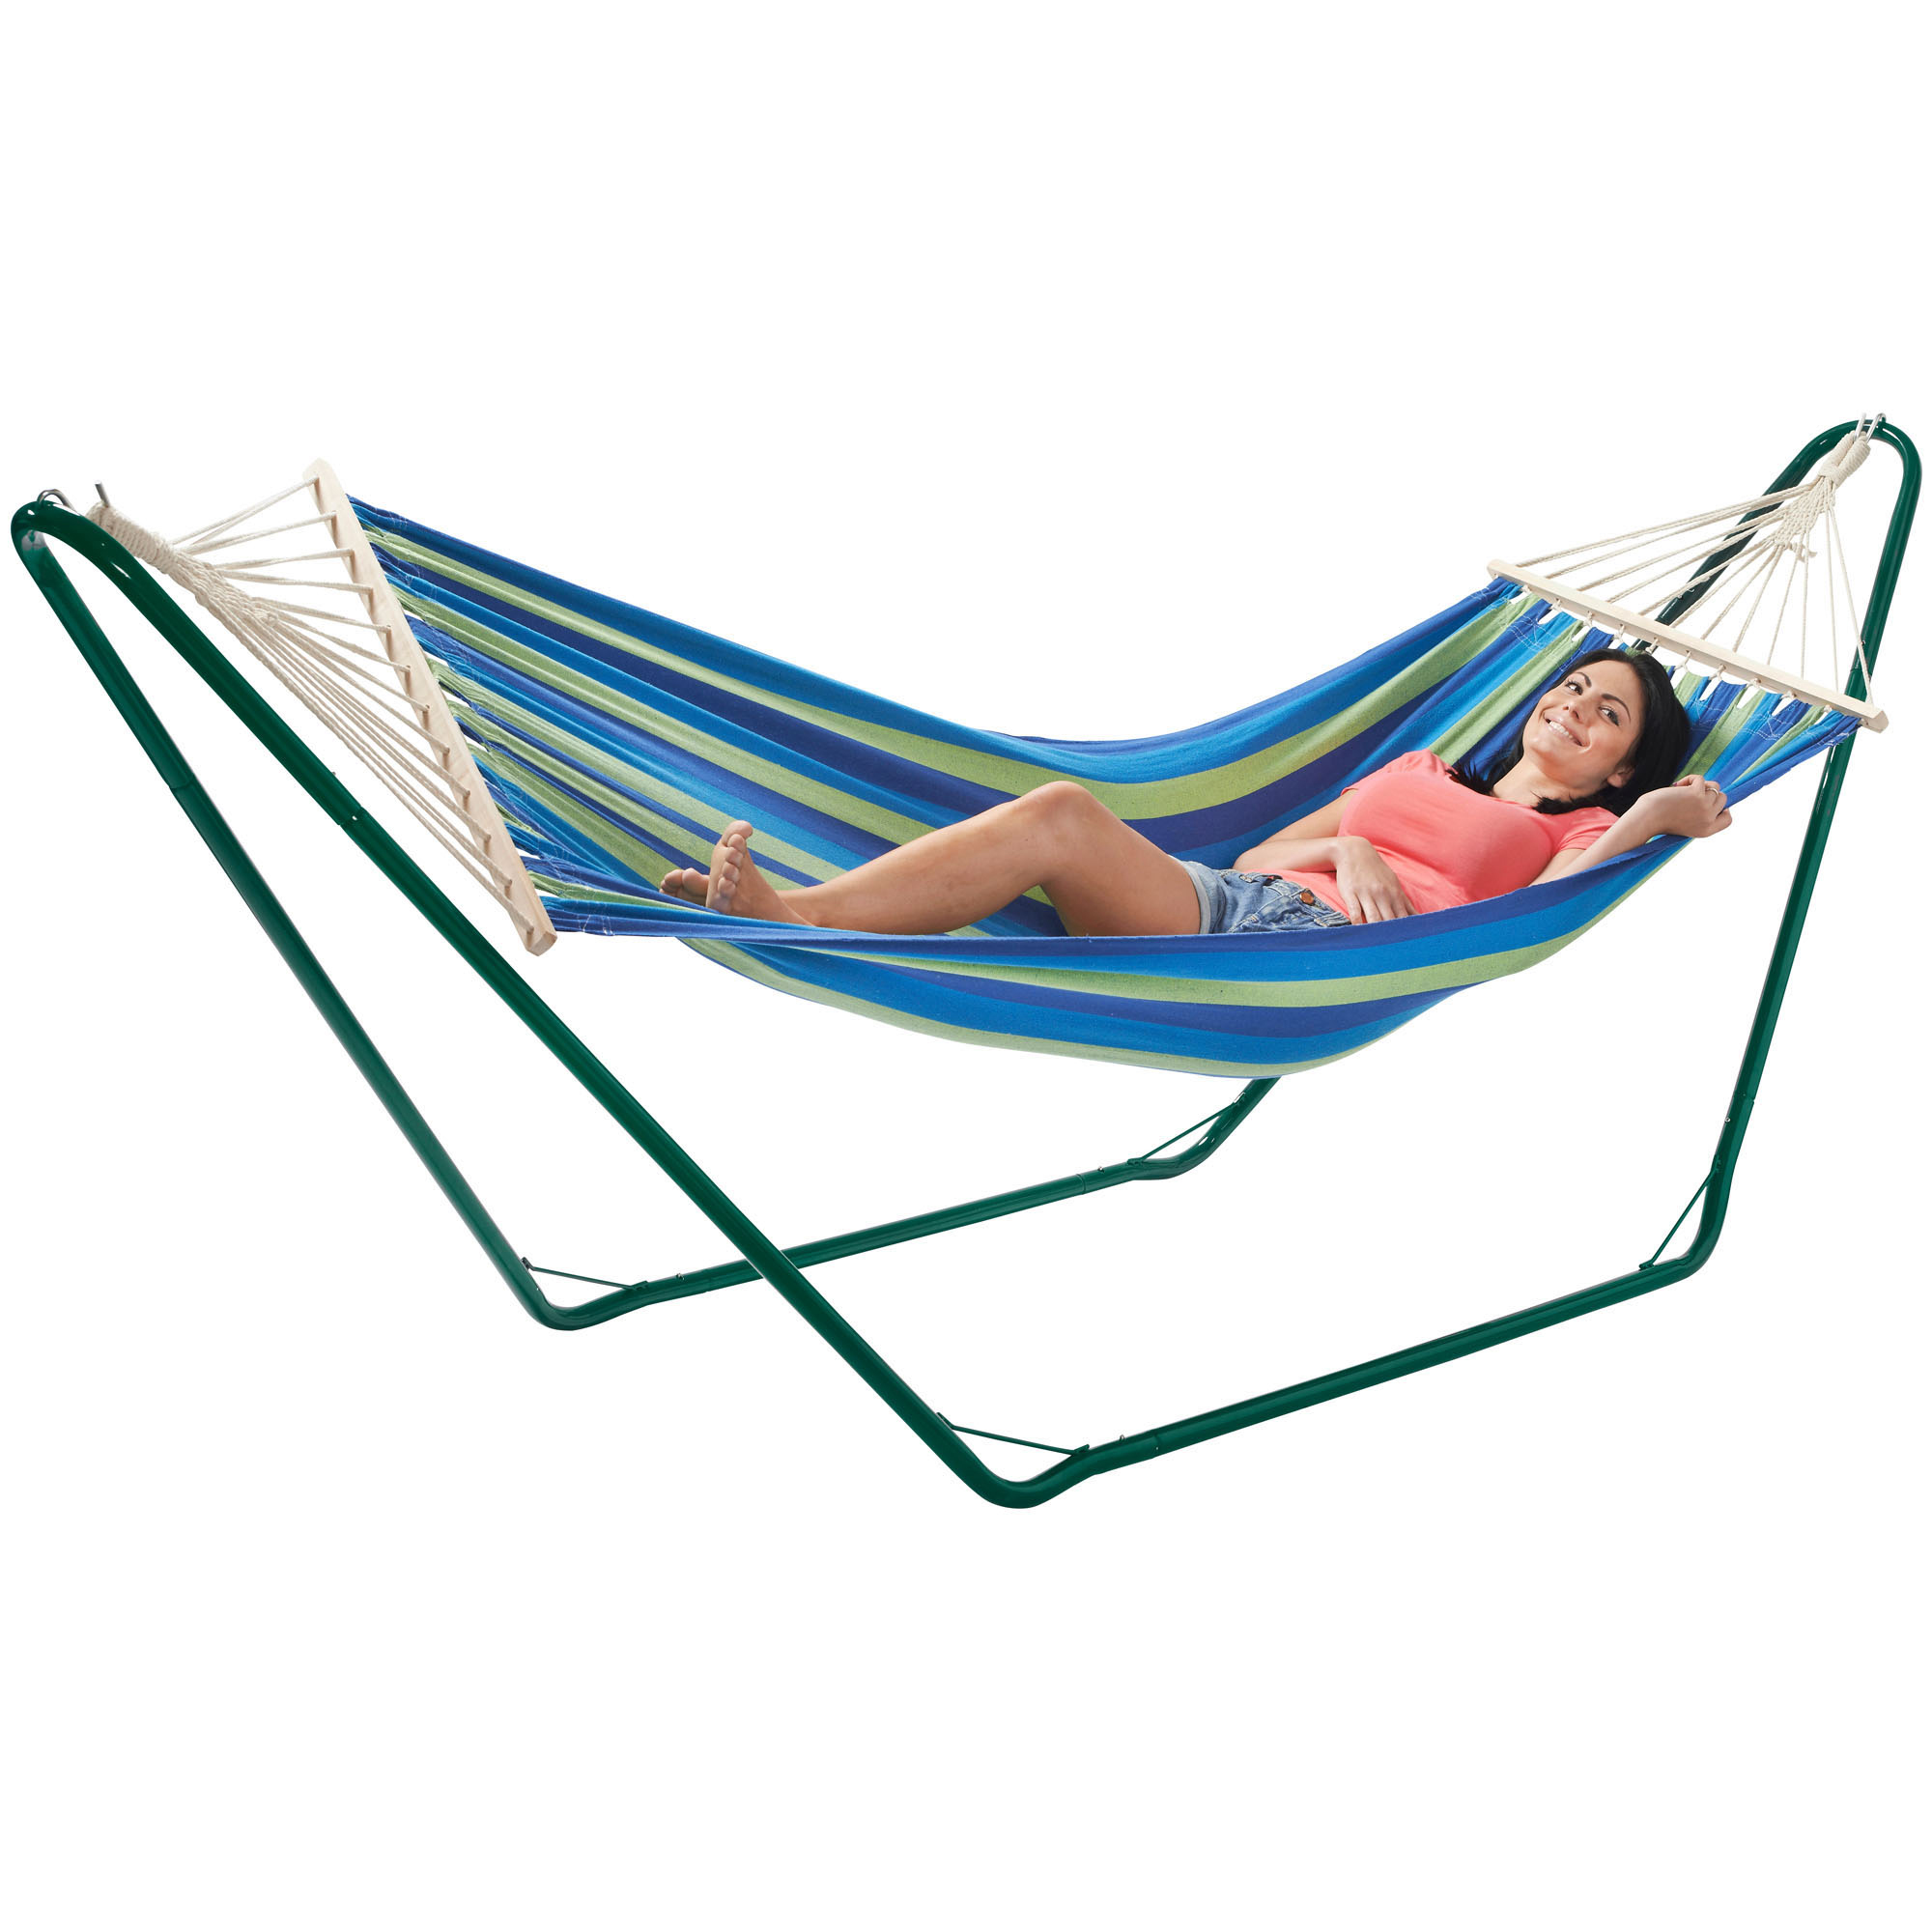 VonHaus Luxury Free Standing Swinging Garden Hammock with